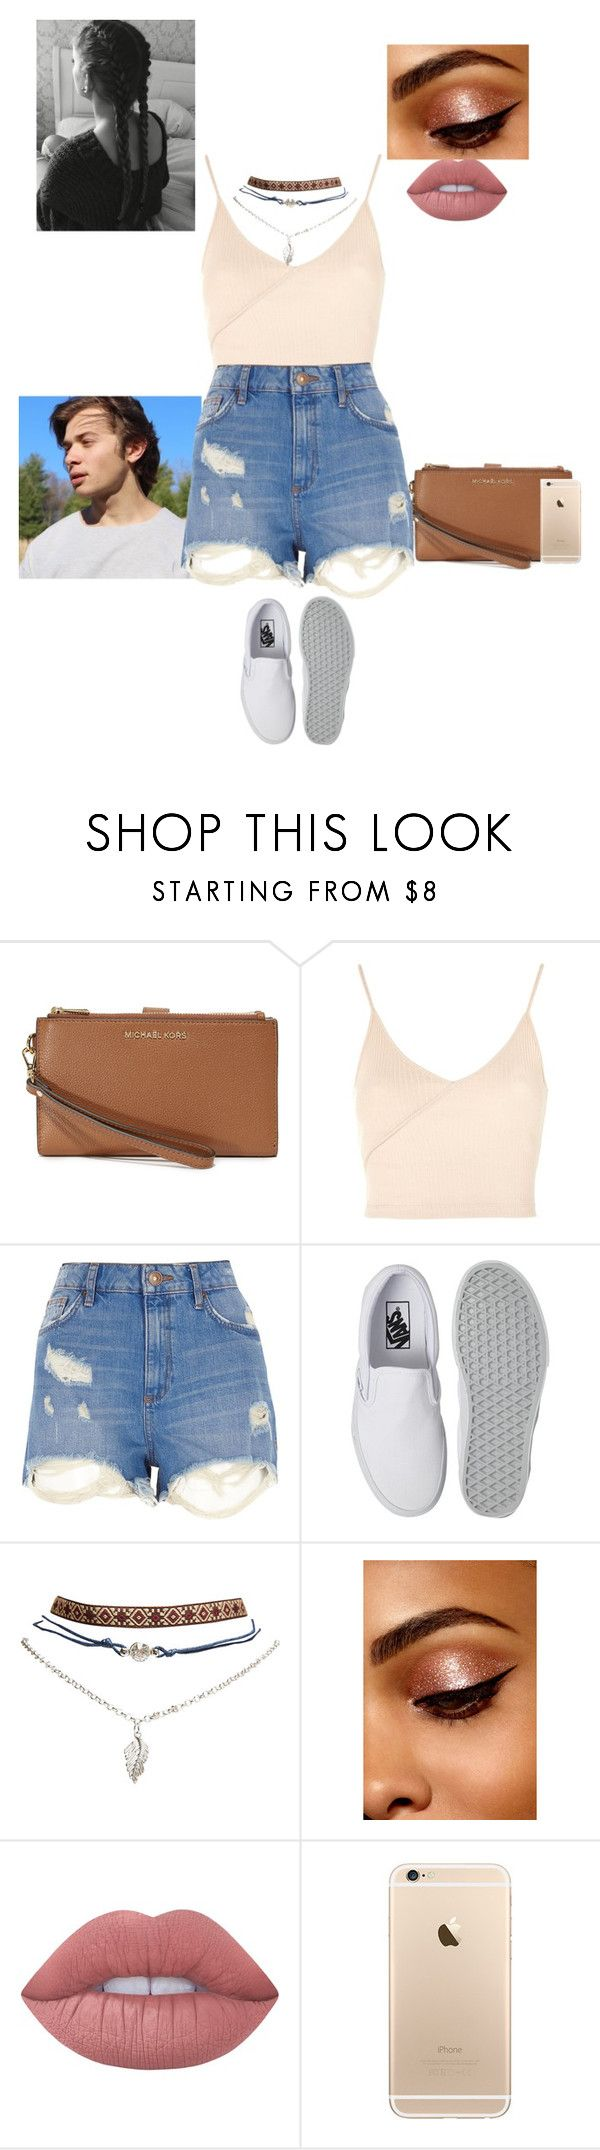 """Summer date with Alec"" by treasurematlock ❤ liked on Polyvore featuring MICHAEL Michael Kors, Topshop, River Island, Vans, Wet Seal and Lime Crime"